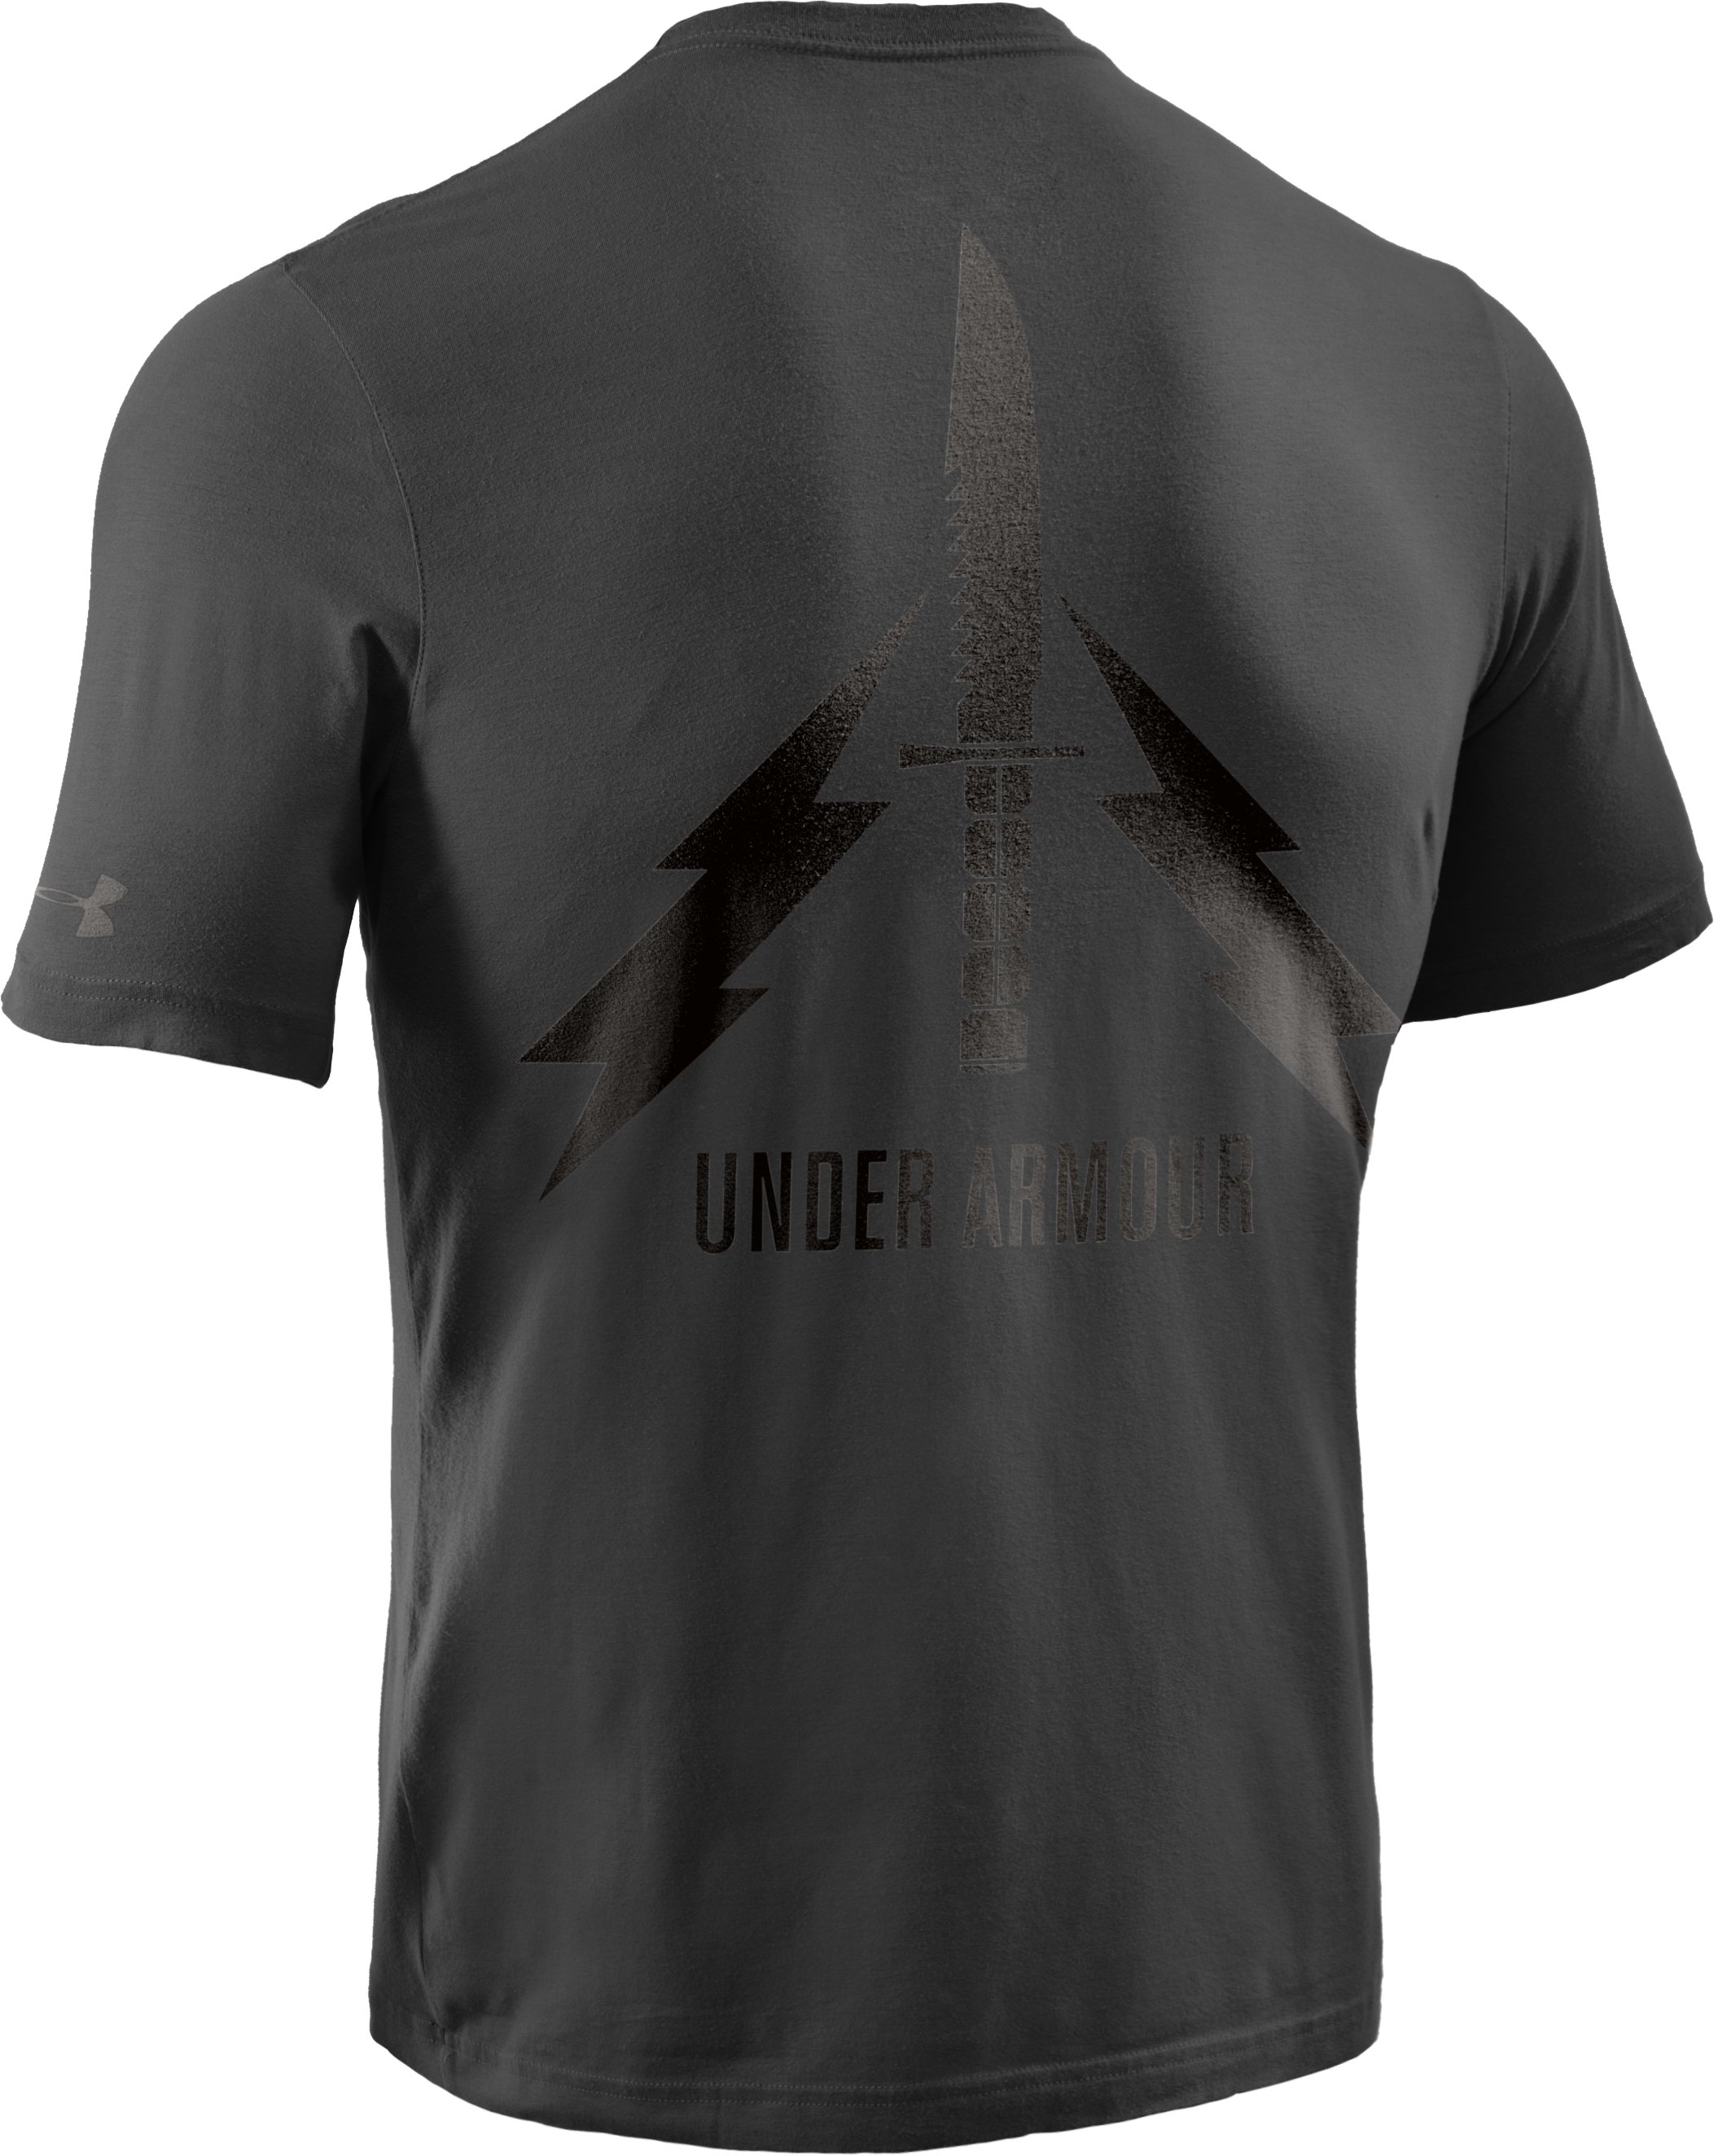 Men's Knife Charged Cotton® T-Shirt, Black